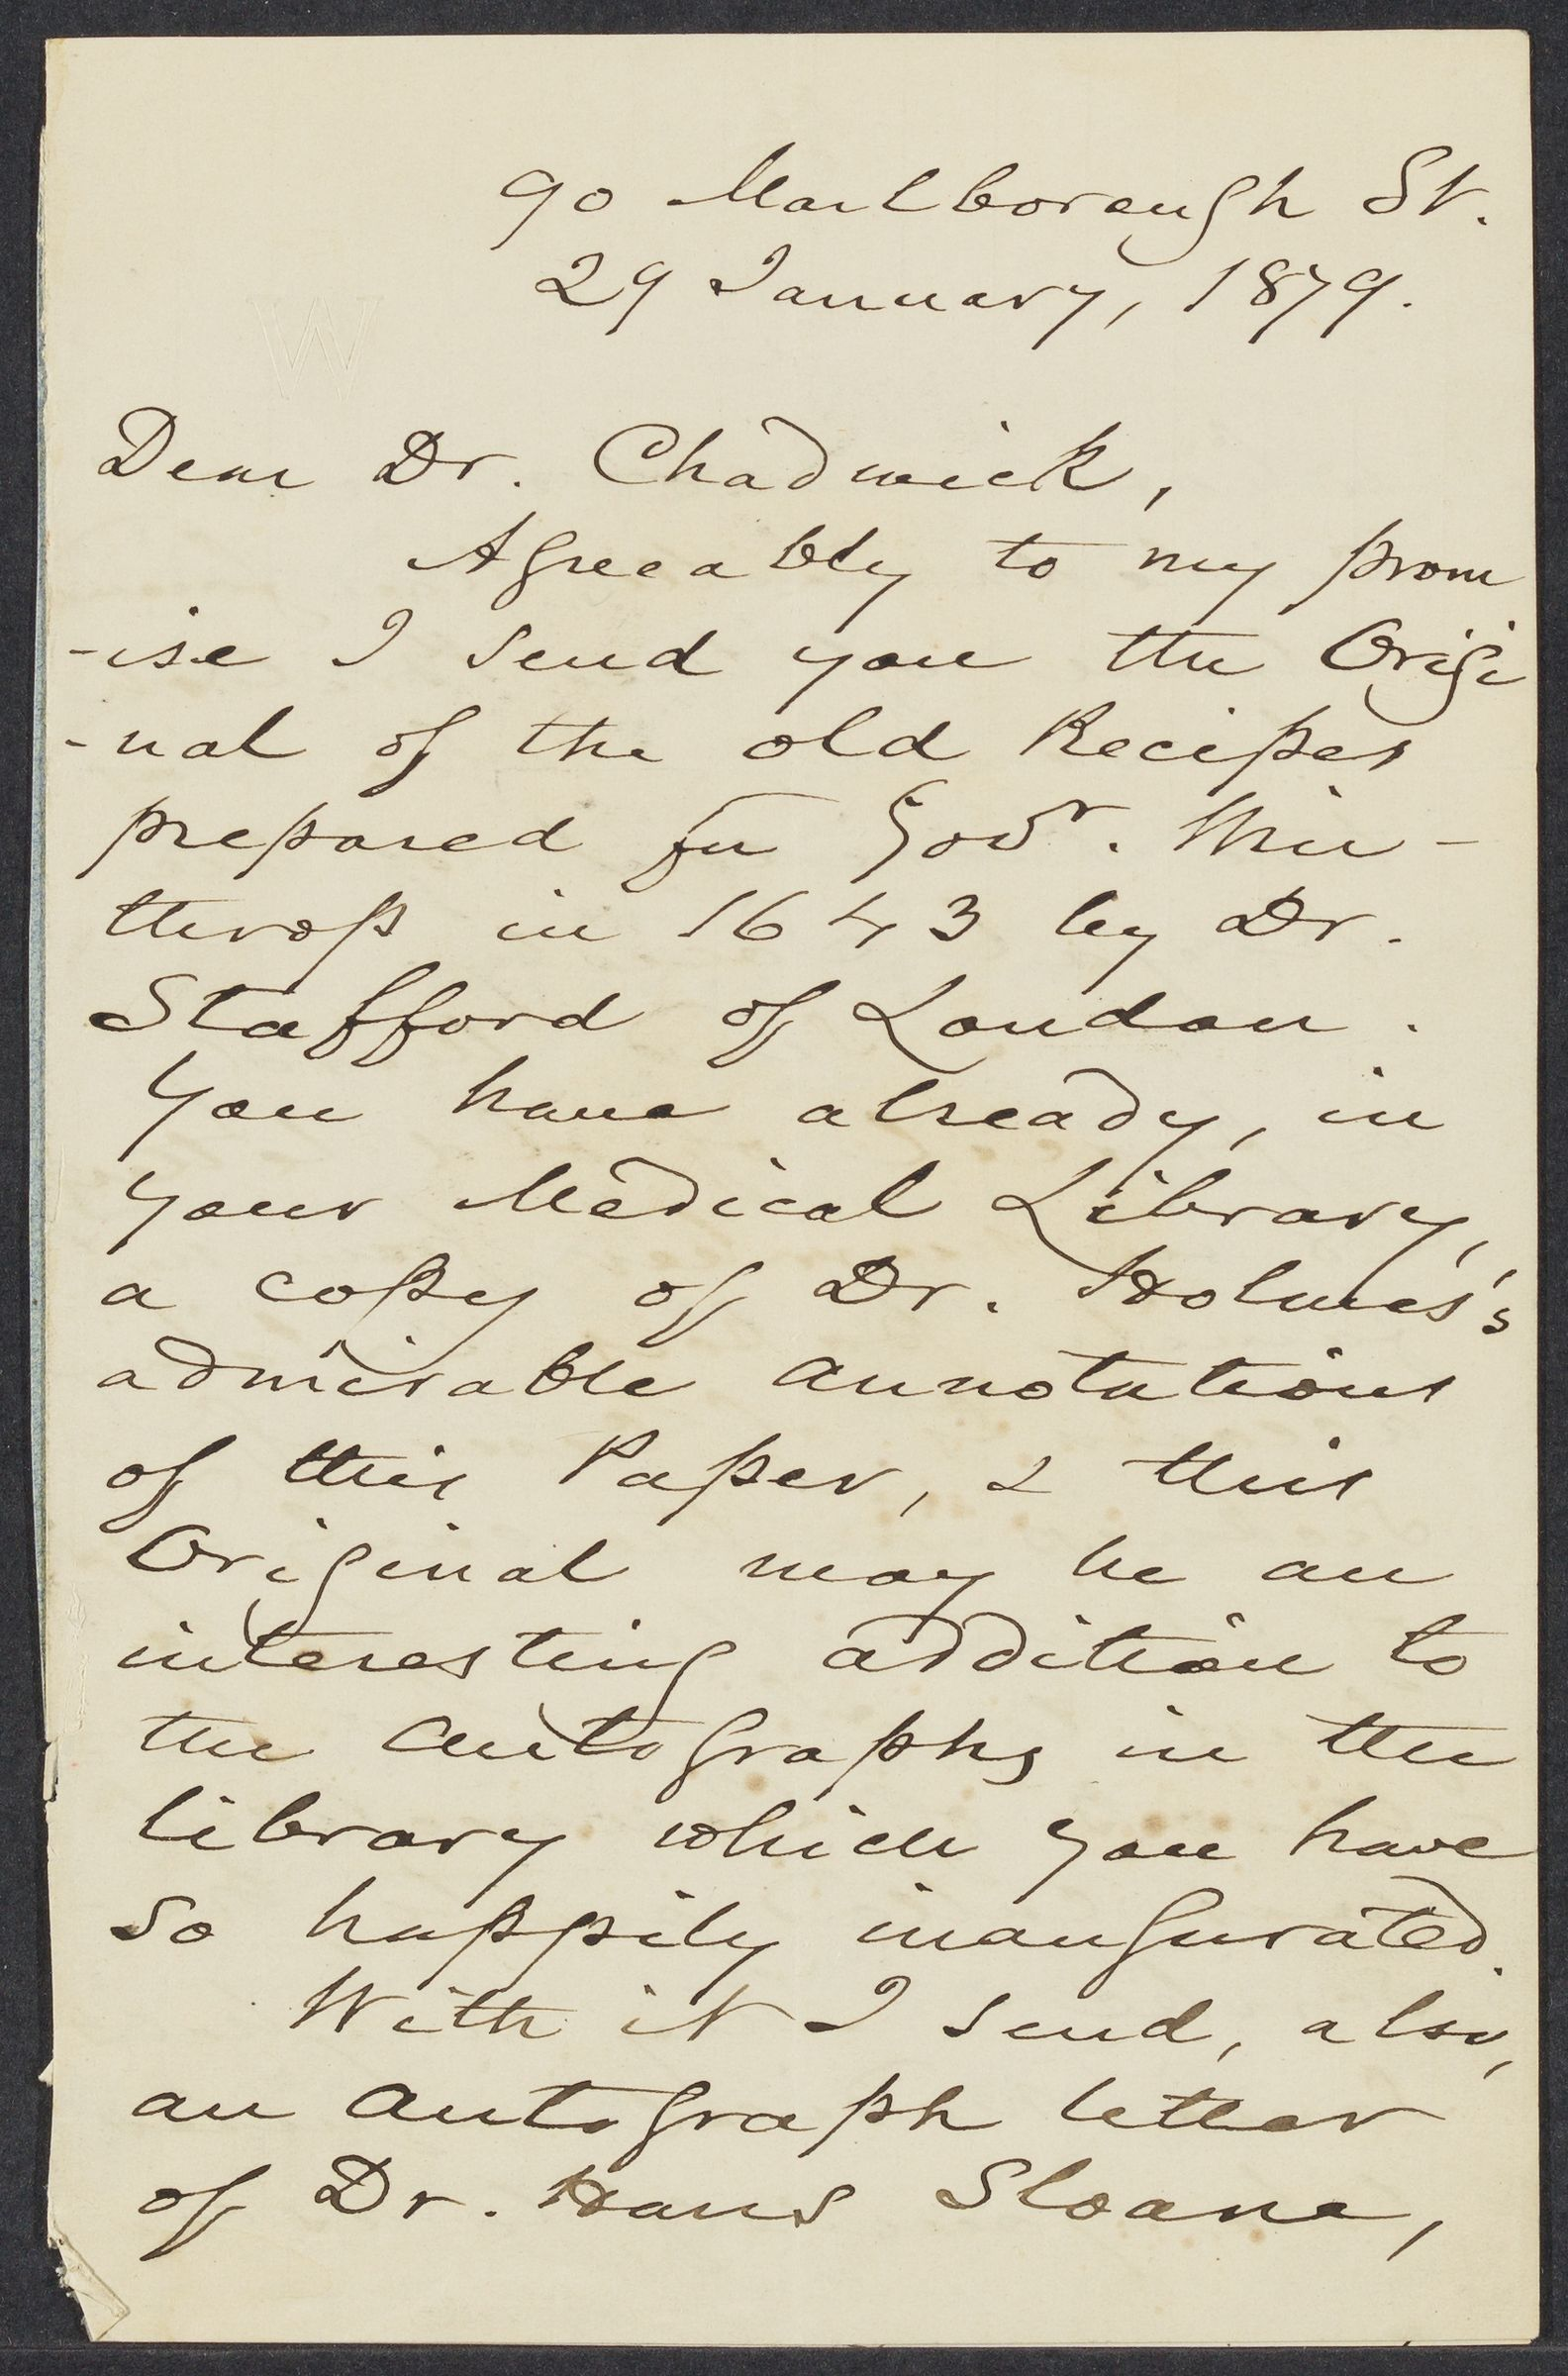 Winthrop, Robert Charles, 1809-1894, autographed letter signed to James Read Chadwick; Boston, 1 side (3 pages), 1879 January 29